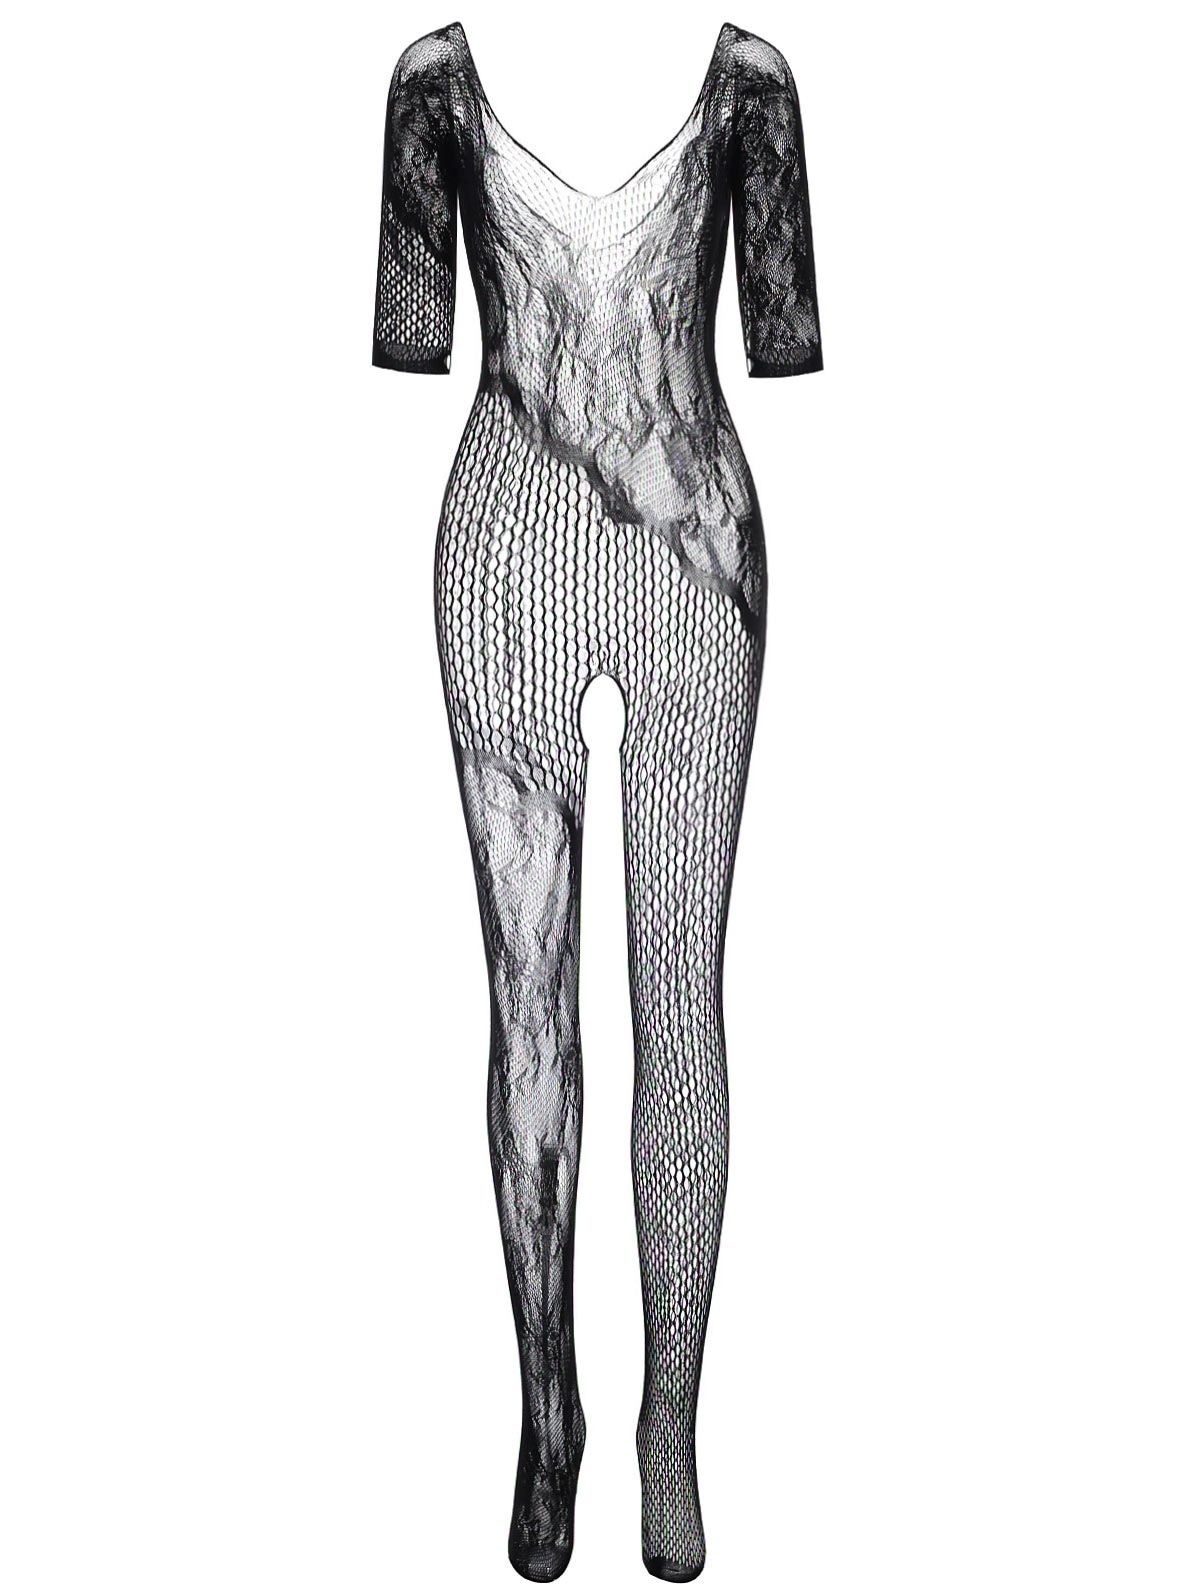 Open Crotch Lace Net Bodystocking